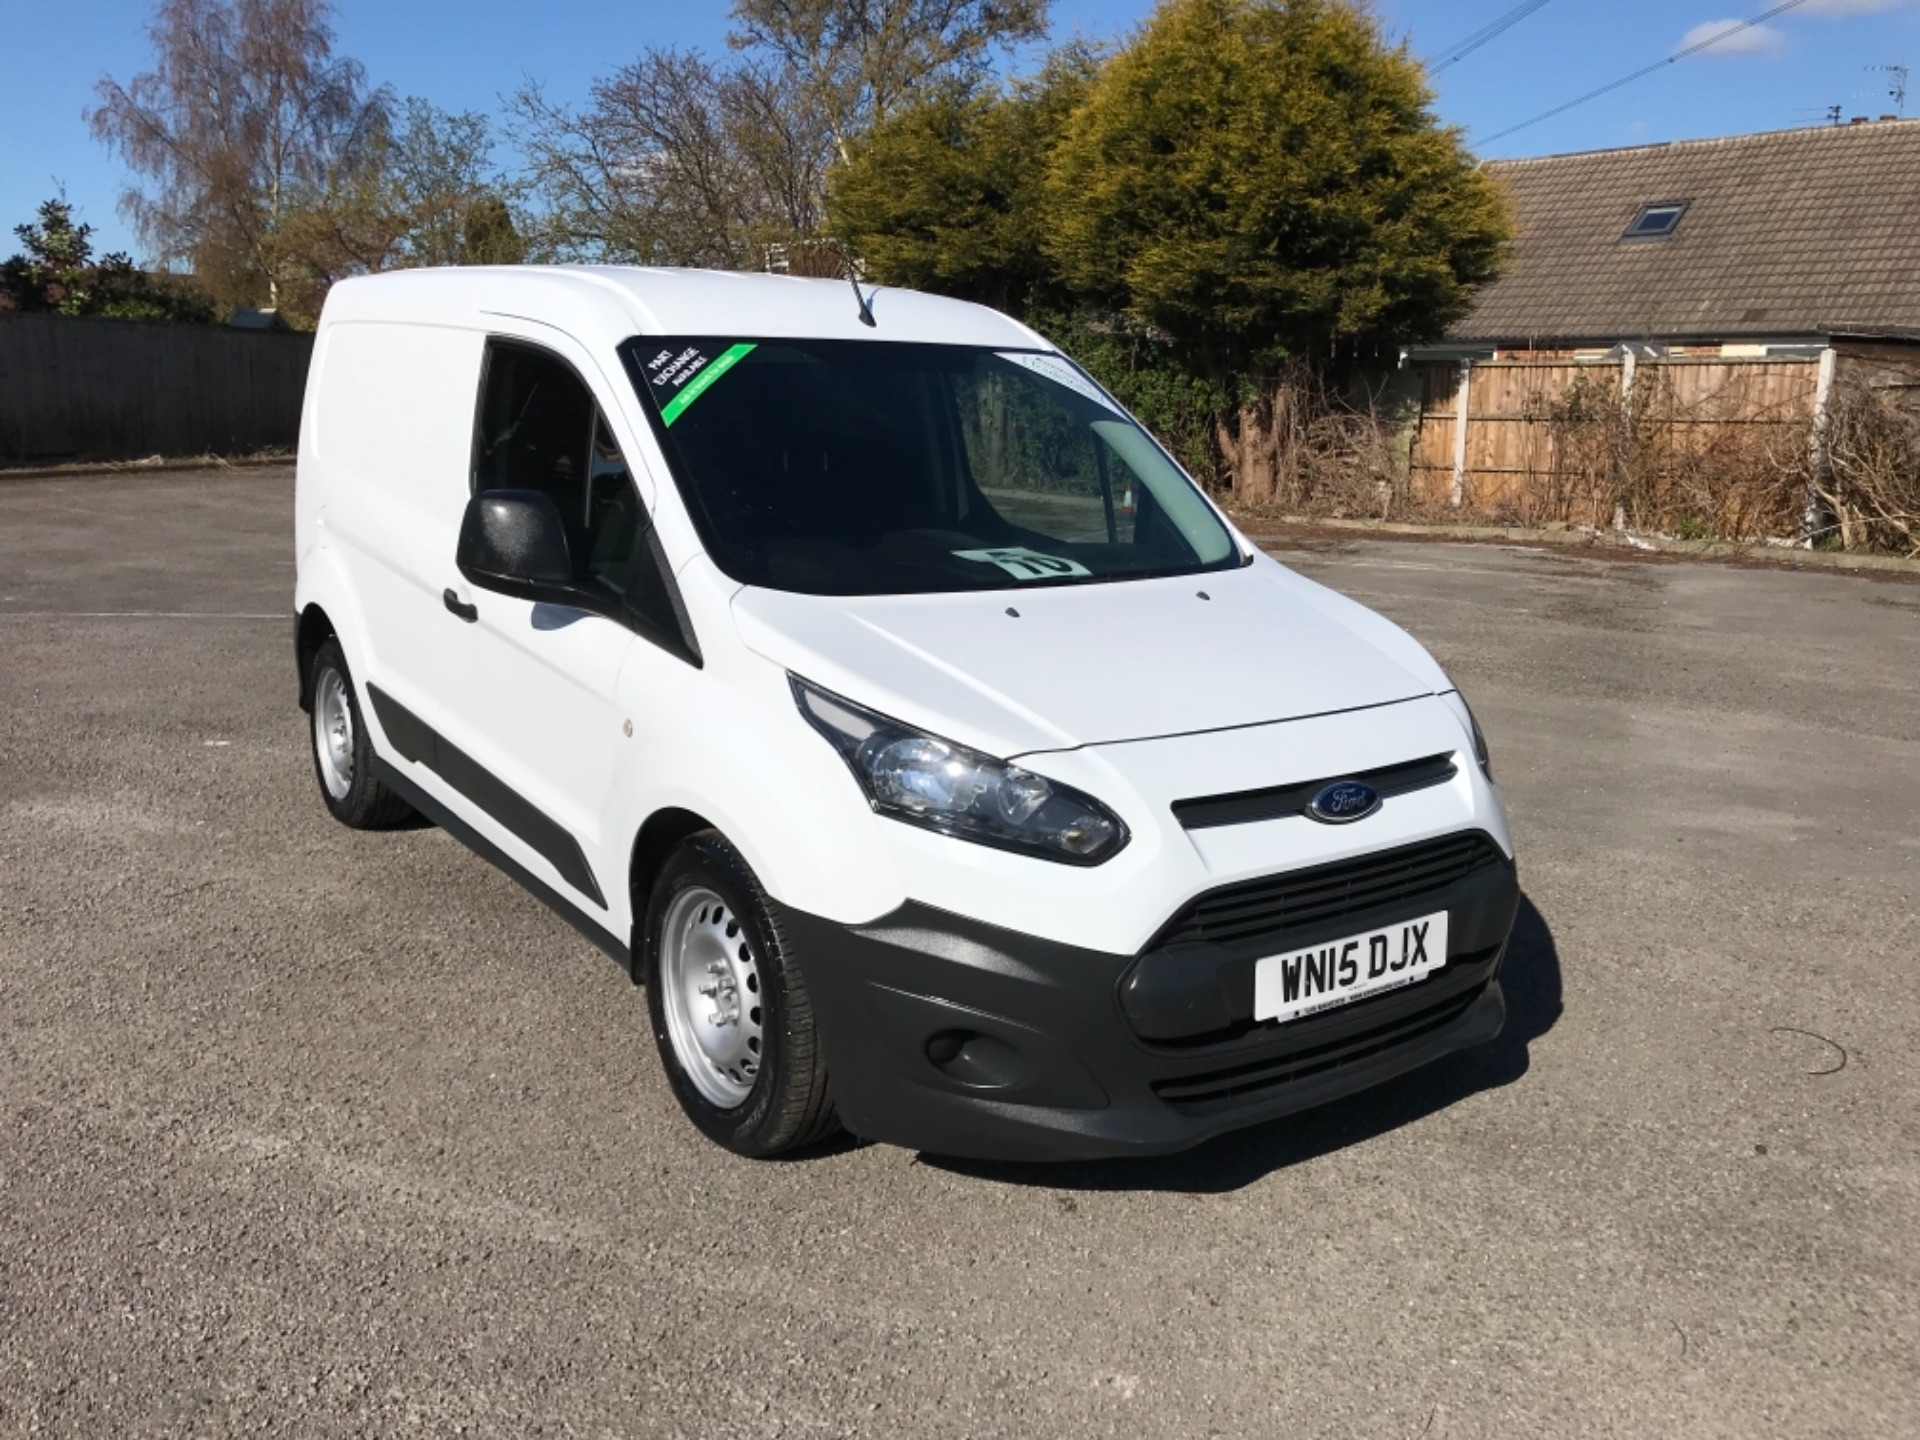 2015 Ford Transit Connect 1.6 Tdci 75Ps Van EURO 5 (WN15DJX)